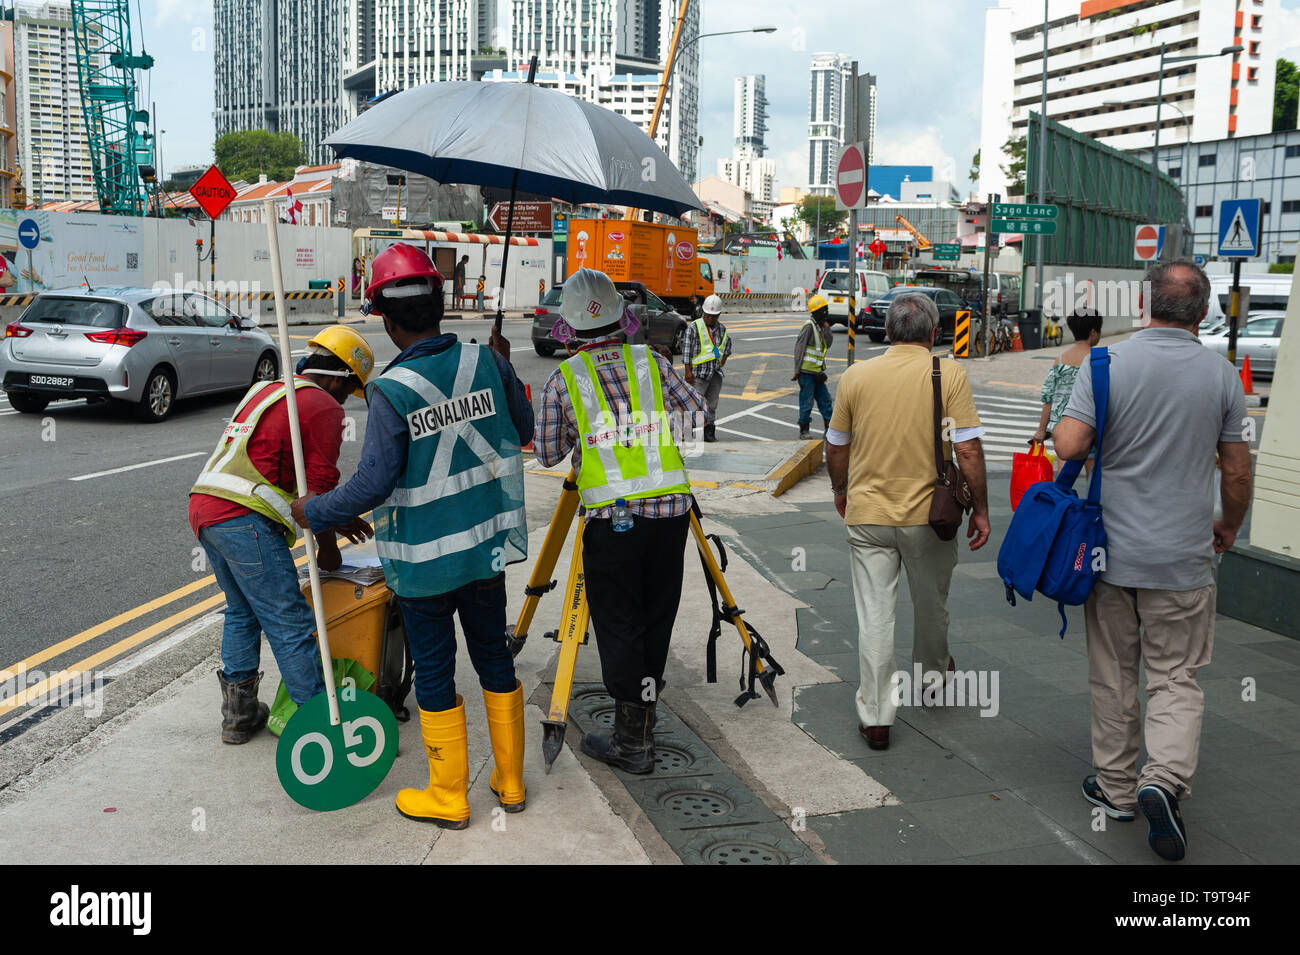 18.04.2018, Singapore, Republic of Singapore, Asia - A surveyor is taking readings from a theodolite in Chinatwon as people are walking by. - Stock Image